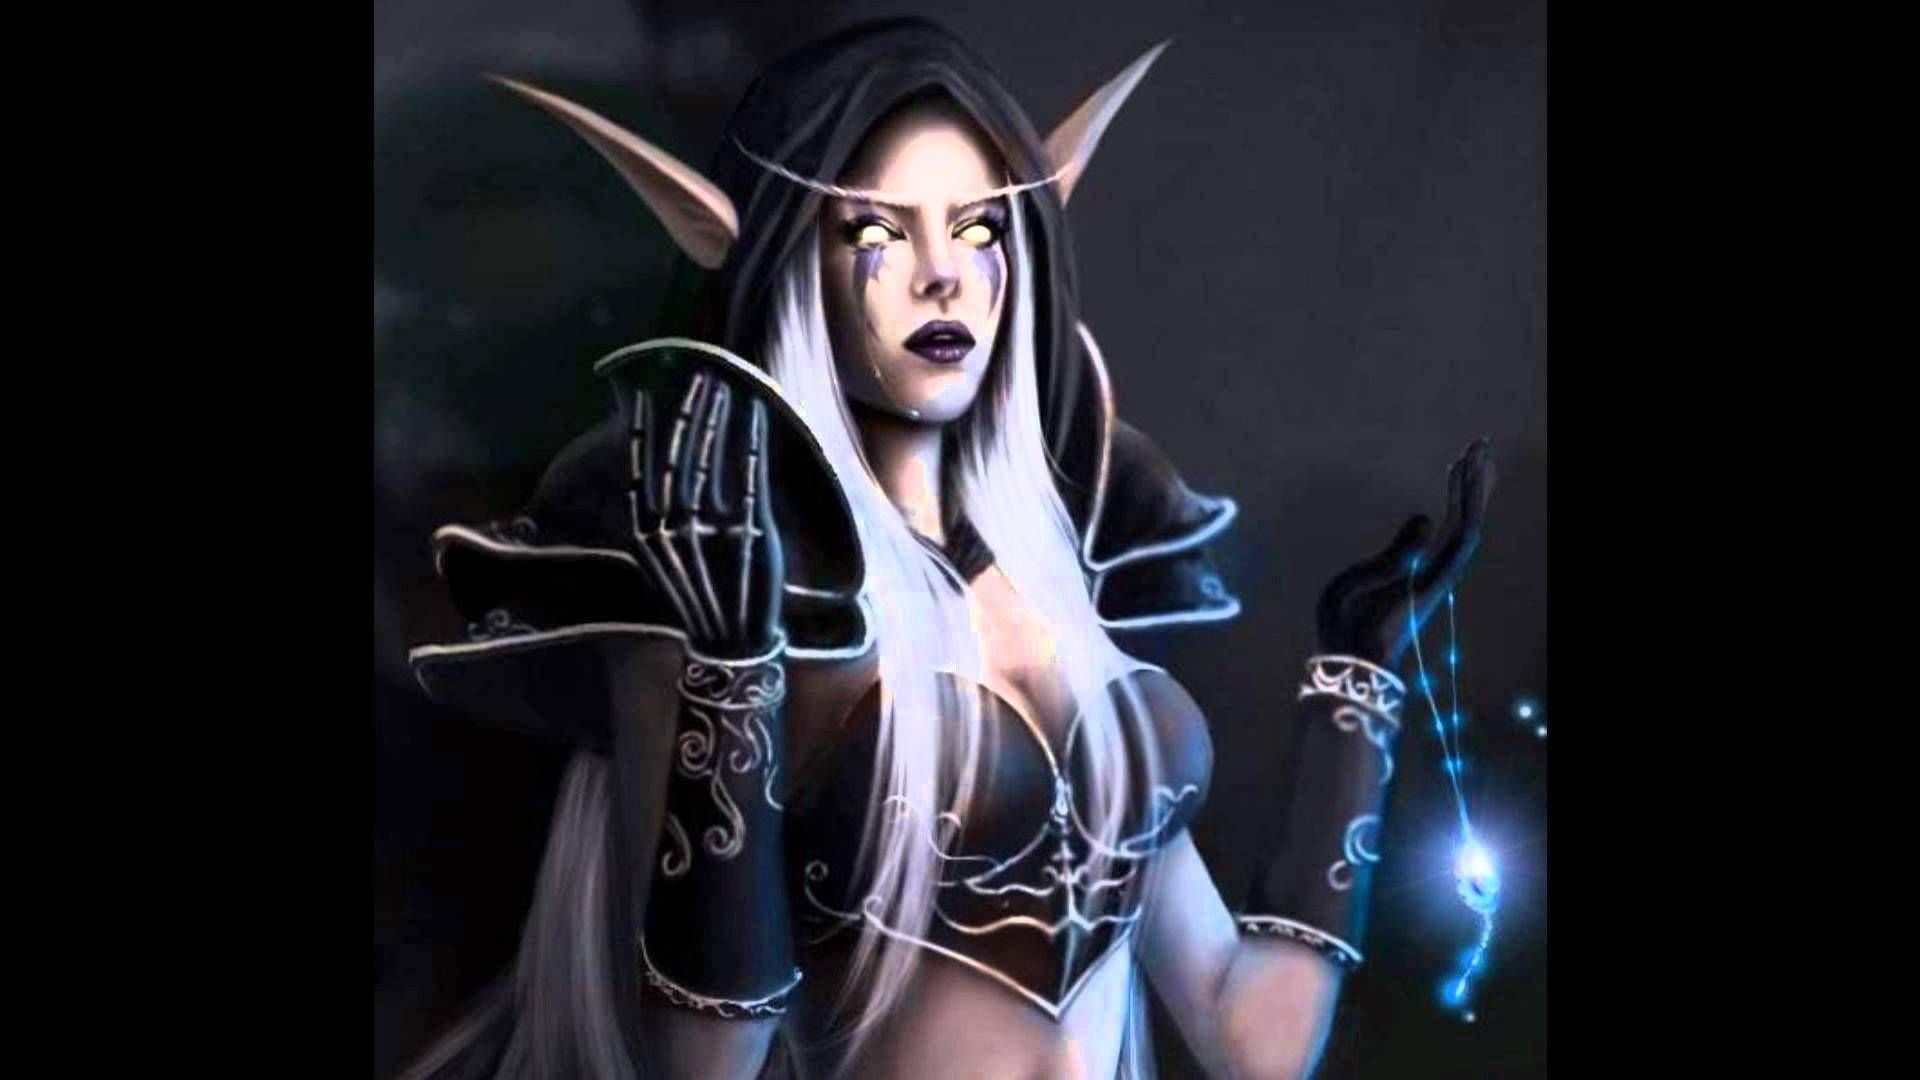 World of Warcraft Sylvanas Windrunner's Song - Lament Of The Highborne